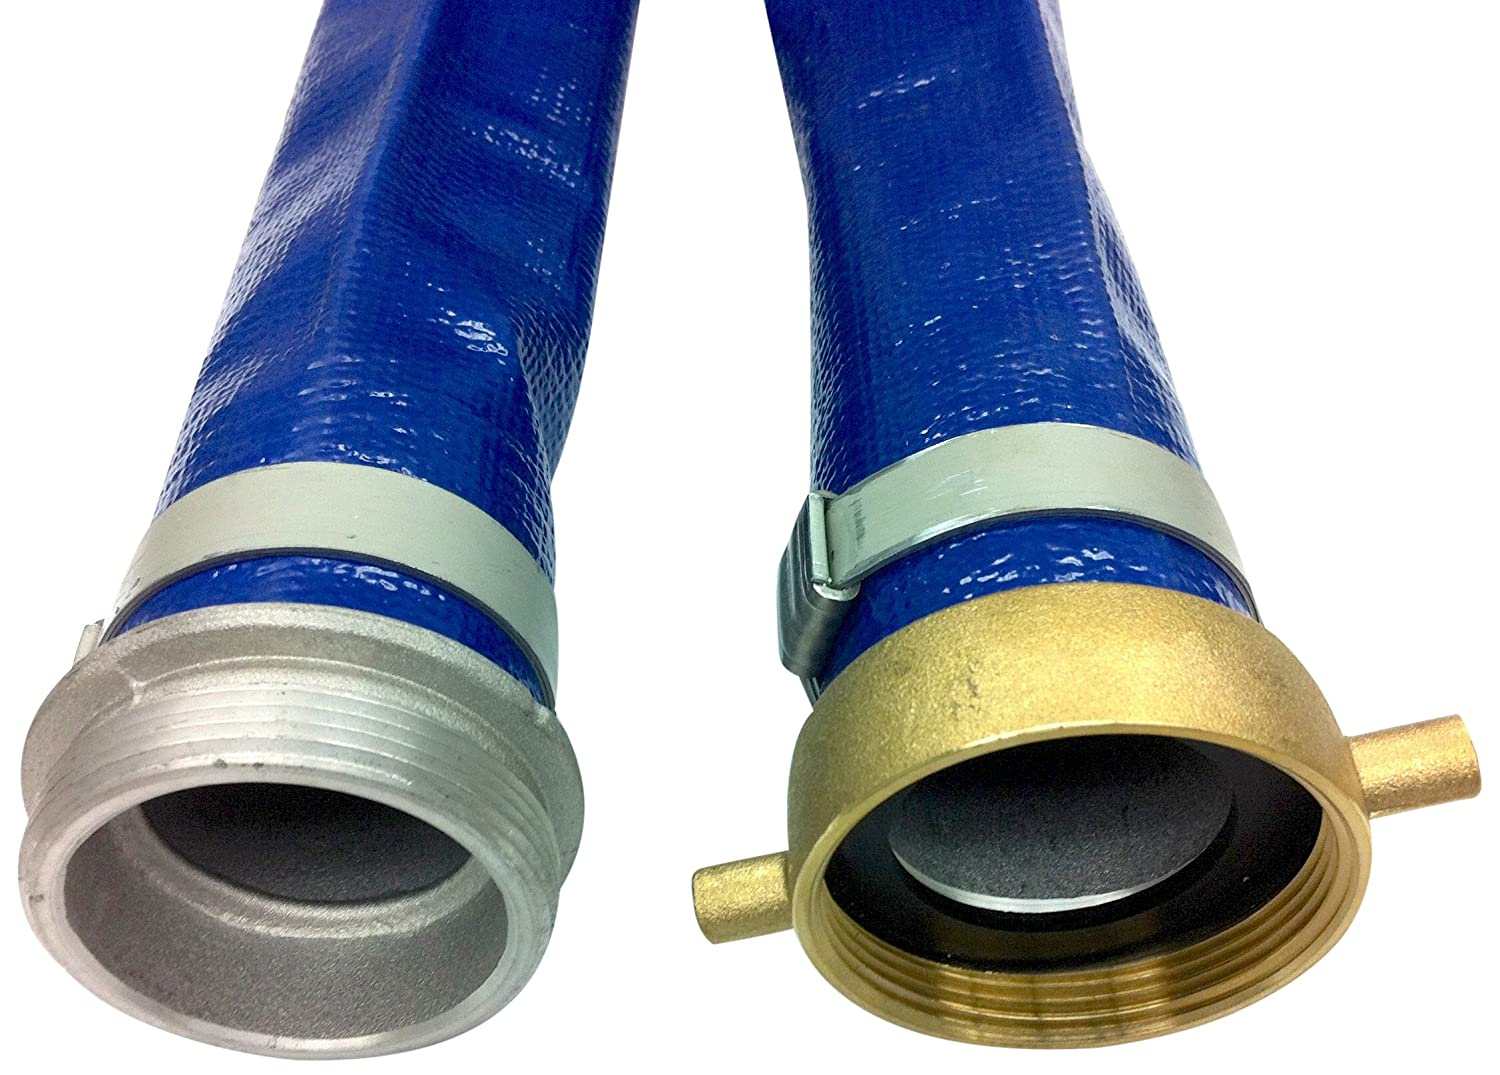 Unisource 200 Blue PVC Discharge Hose Coupled Assembly, MPT x NPSM Female Swivel Couplings